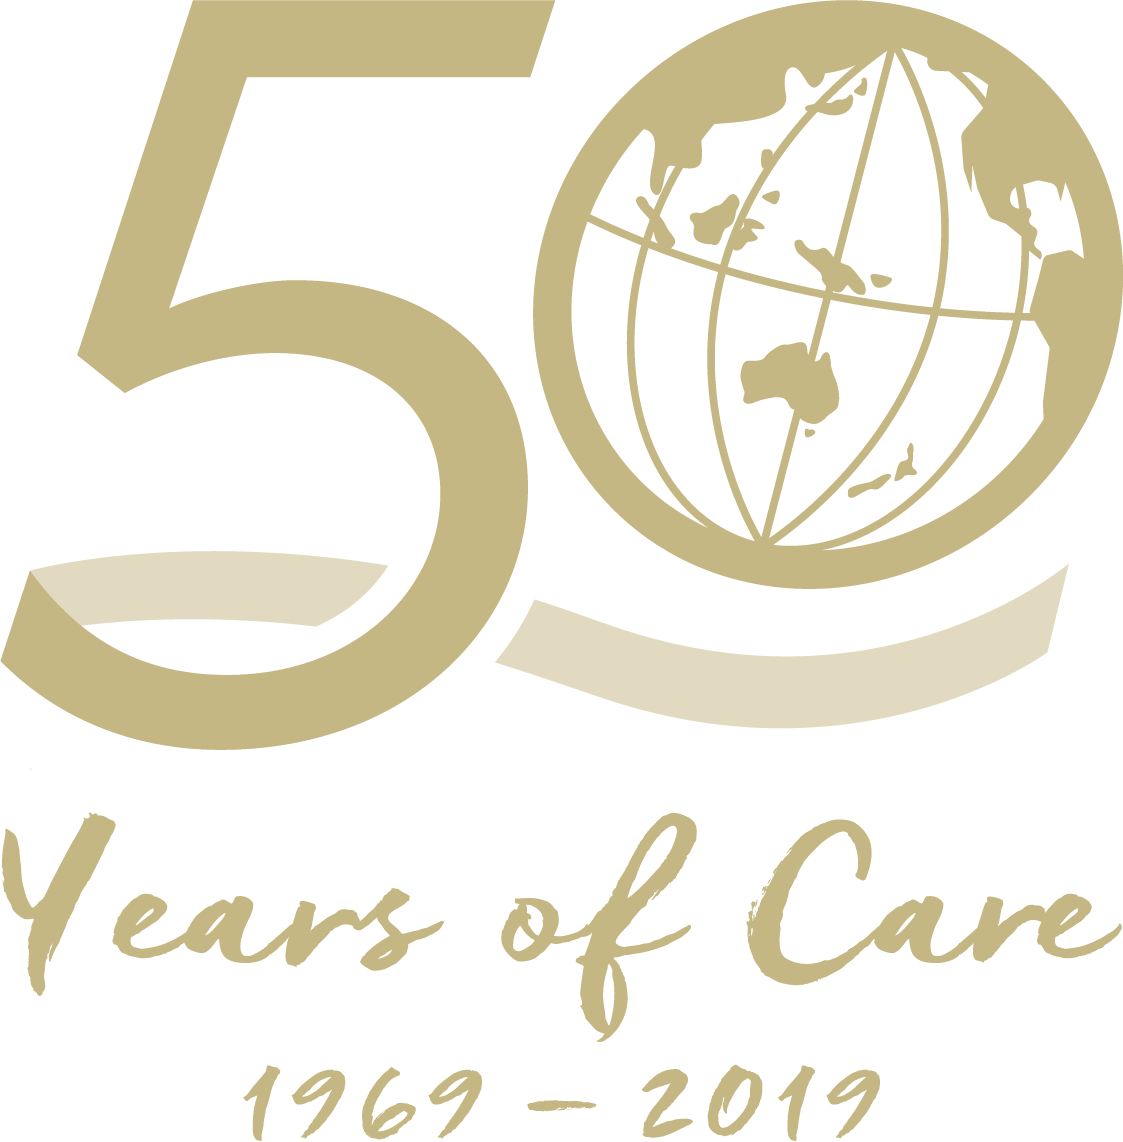 Fisher & Paykel Healthcare | 50 Years of Care 1969 - 2019